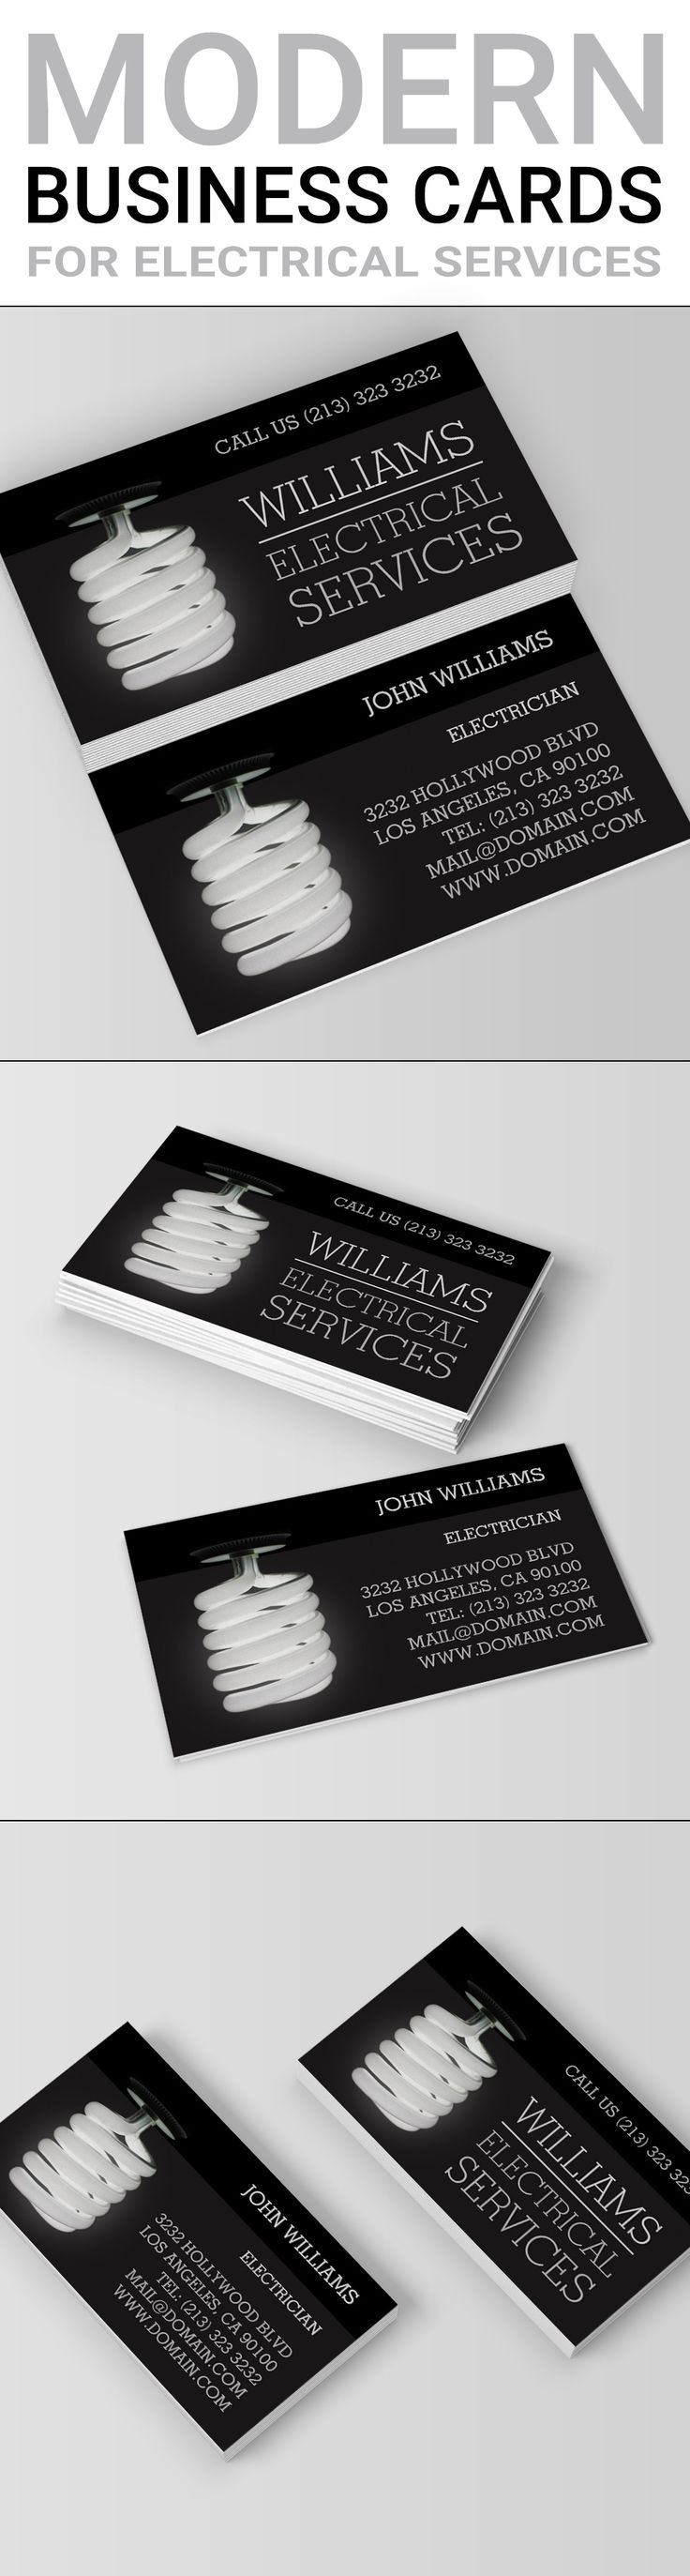 289 best Zazzle Business Cards images on Pinterest